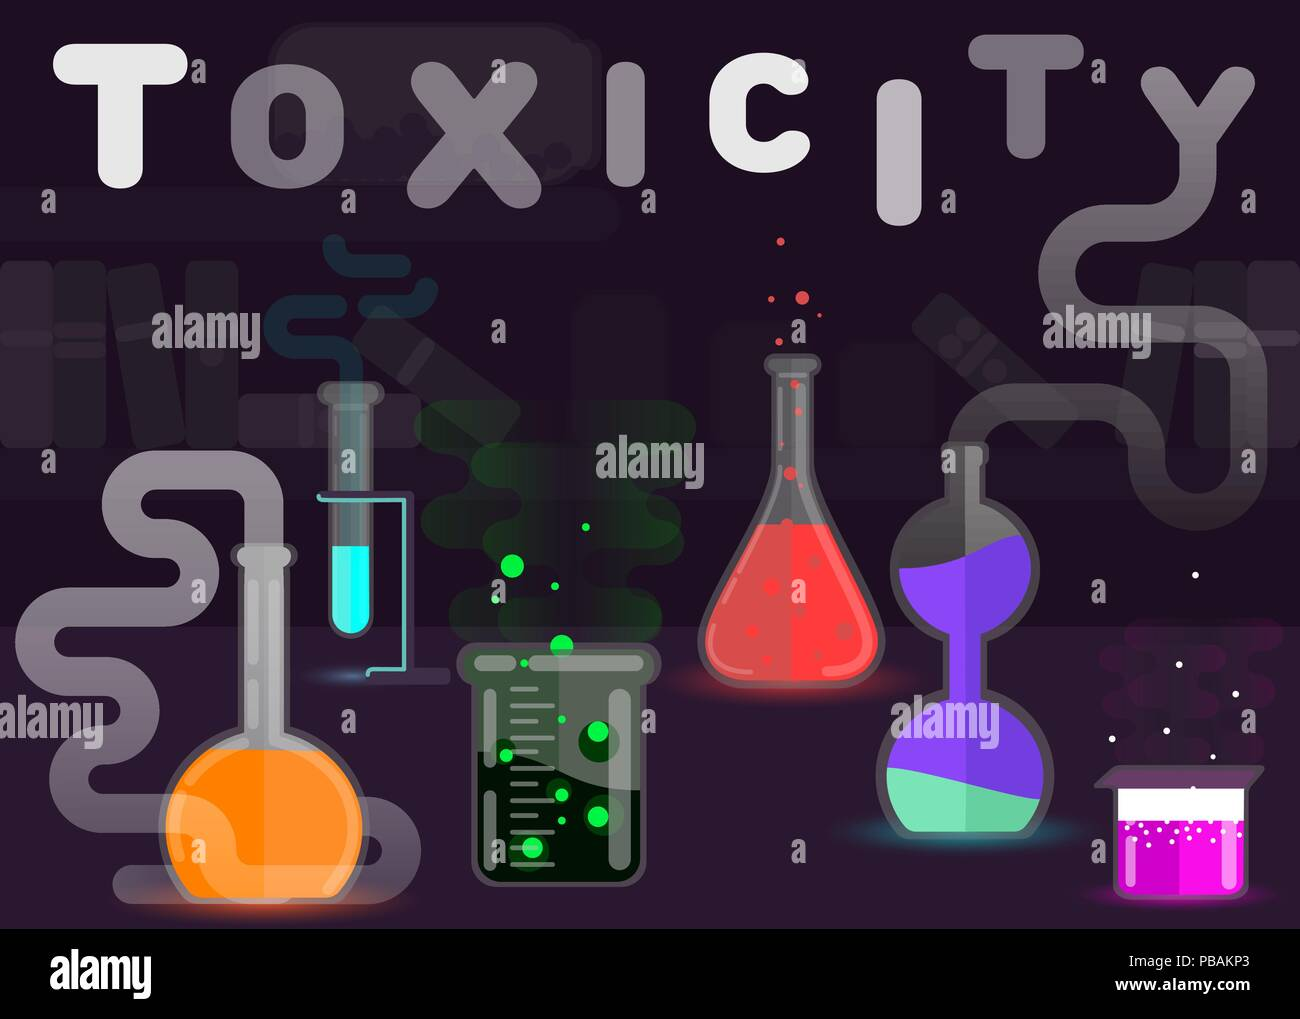 Toxicity sign, toxic chemicals flat style vector illustration - Stock Image